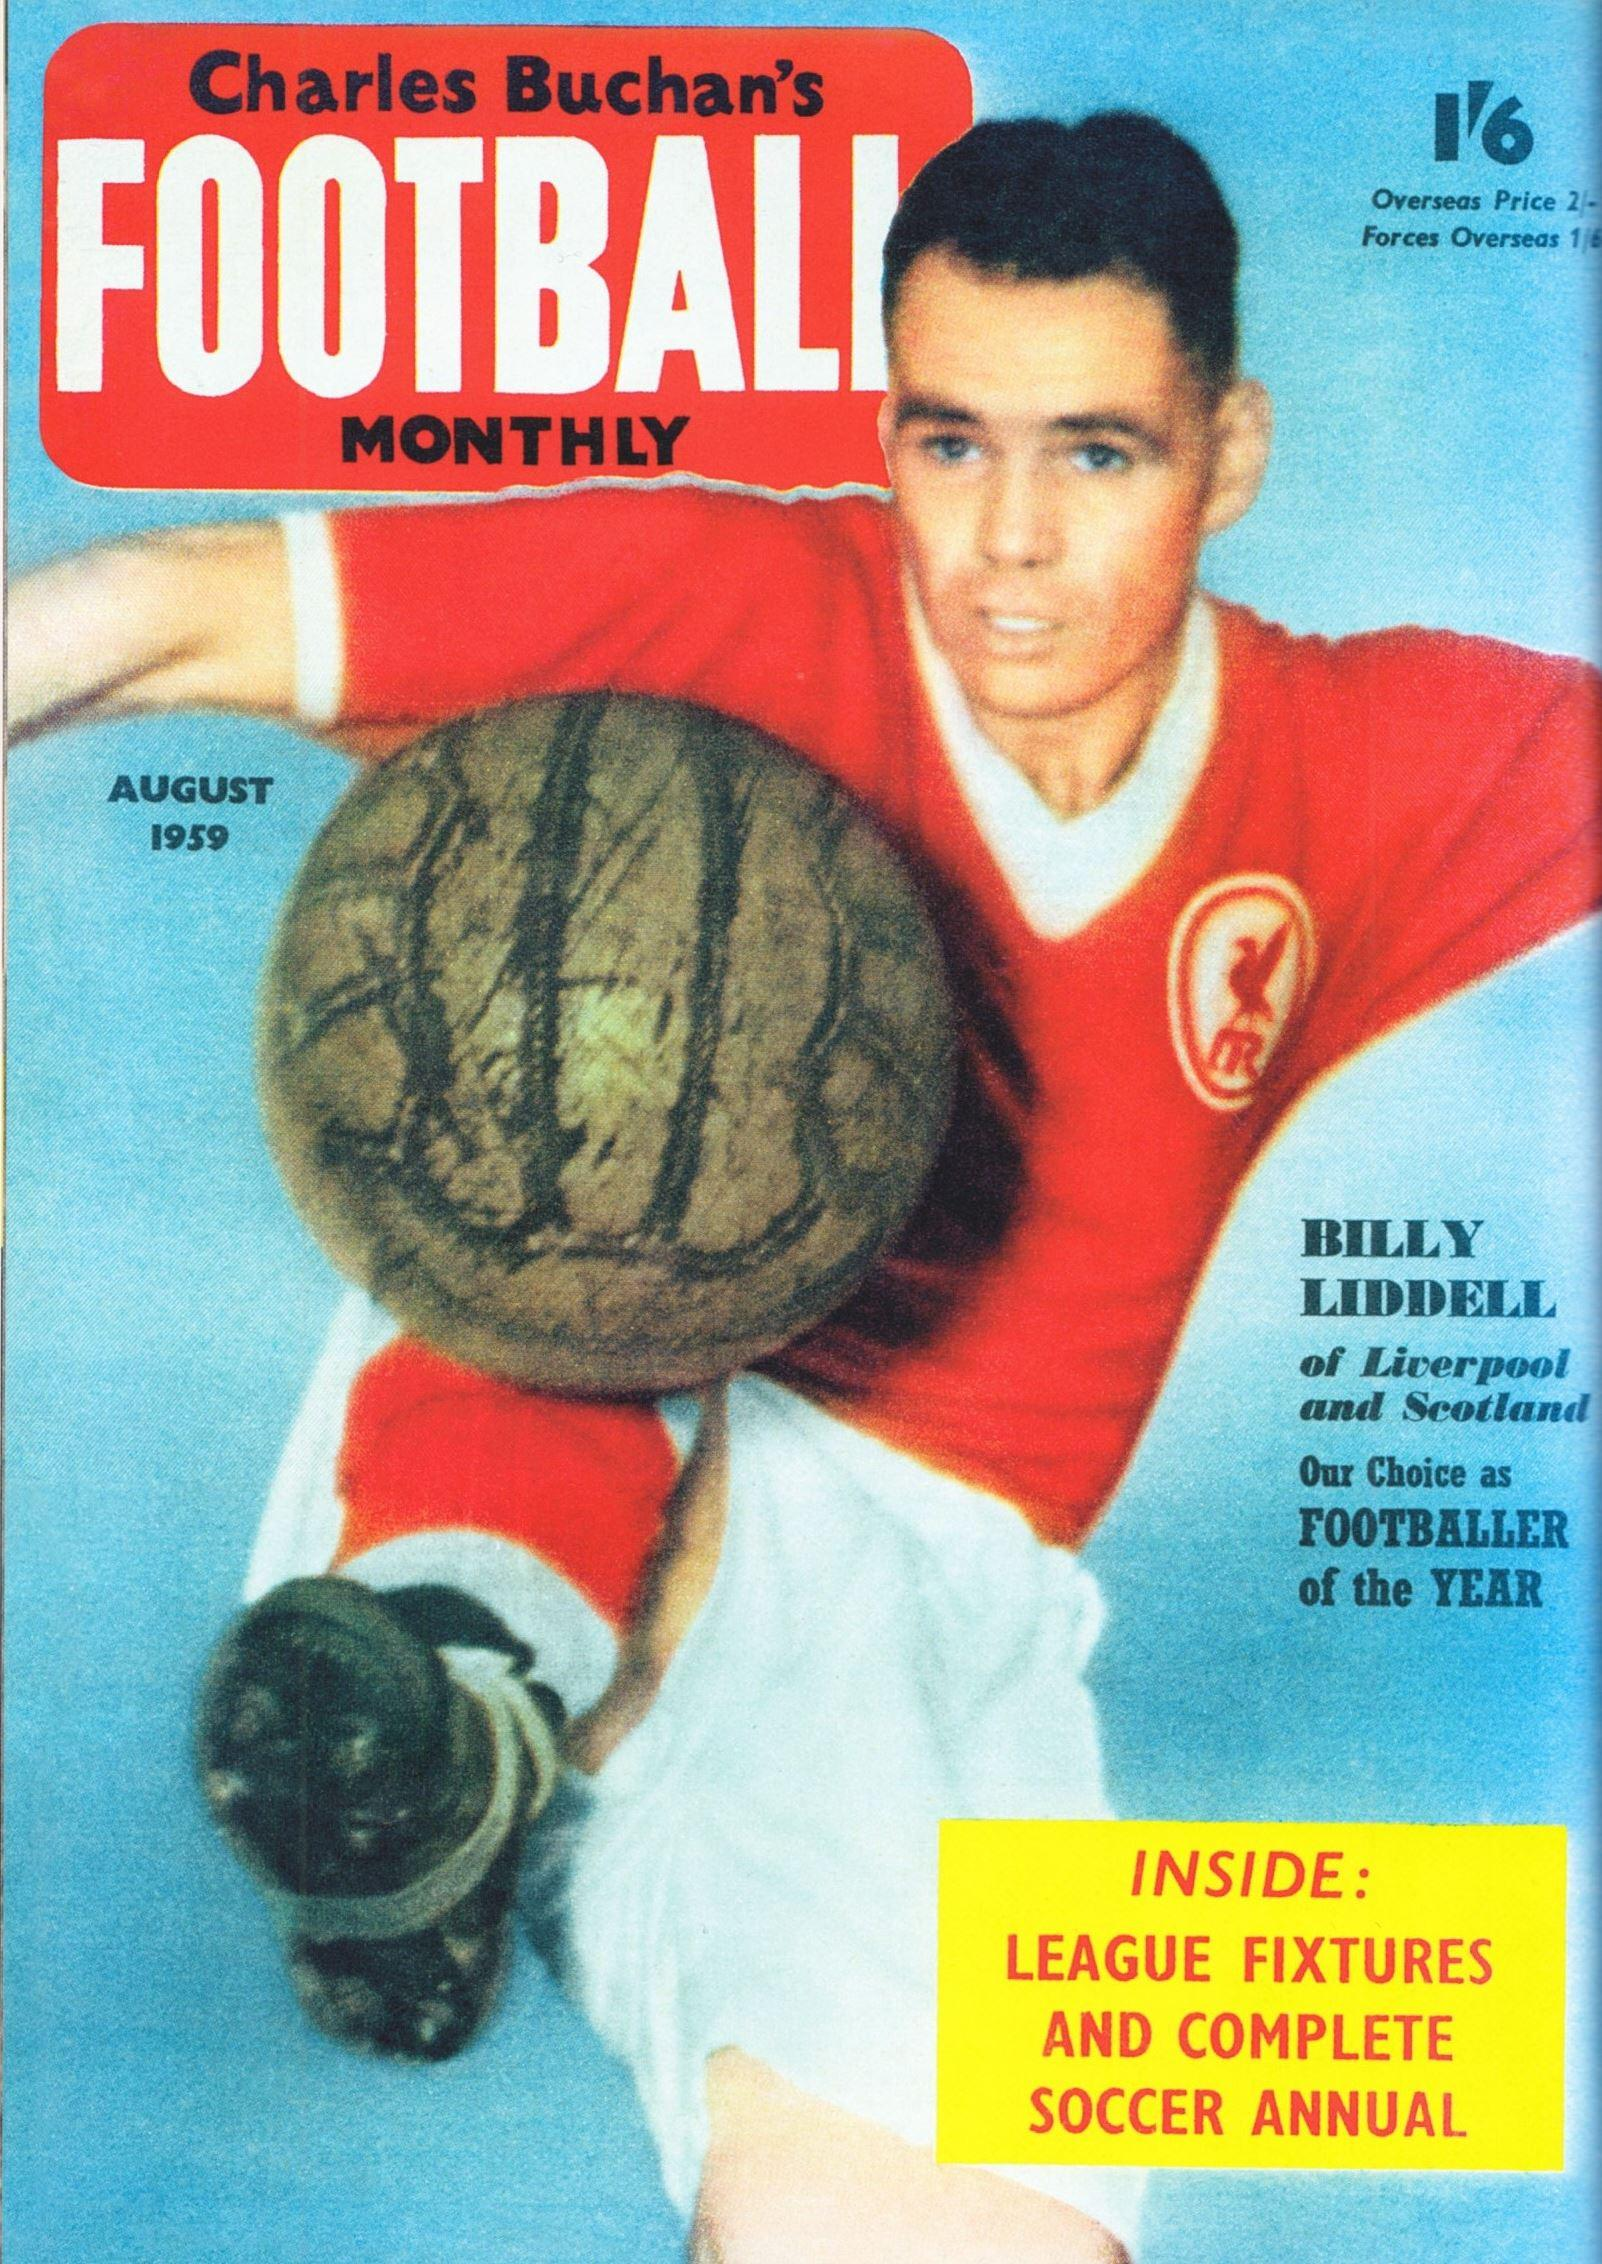 Billy Liddell on the cover of the Football Monthly - August 1959